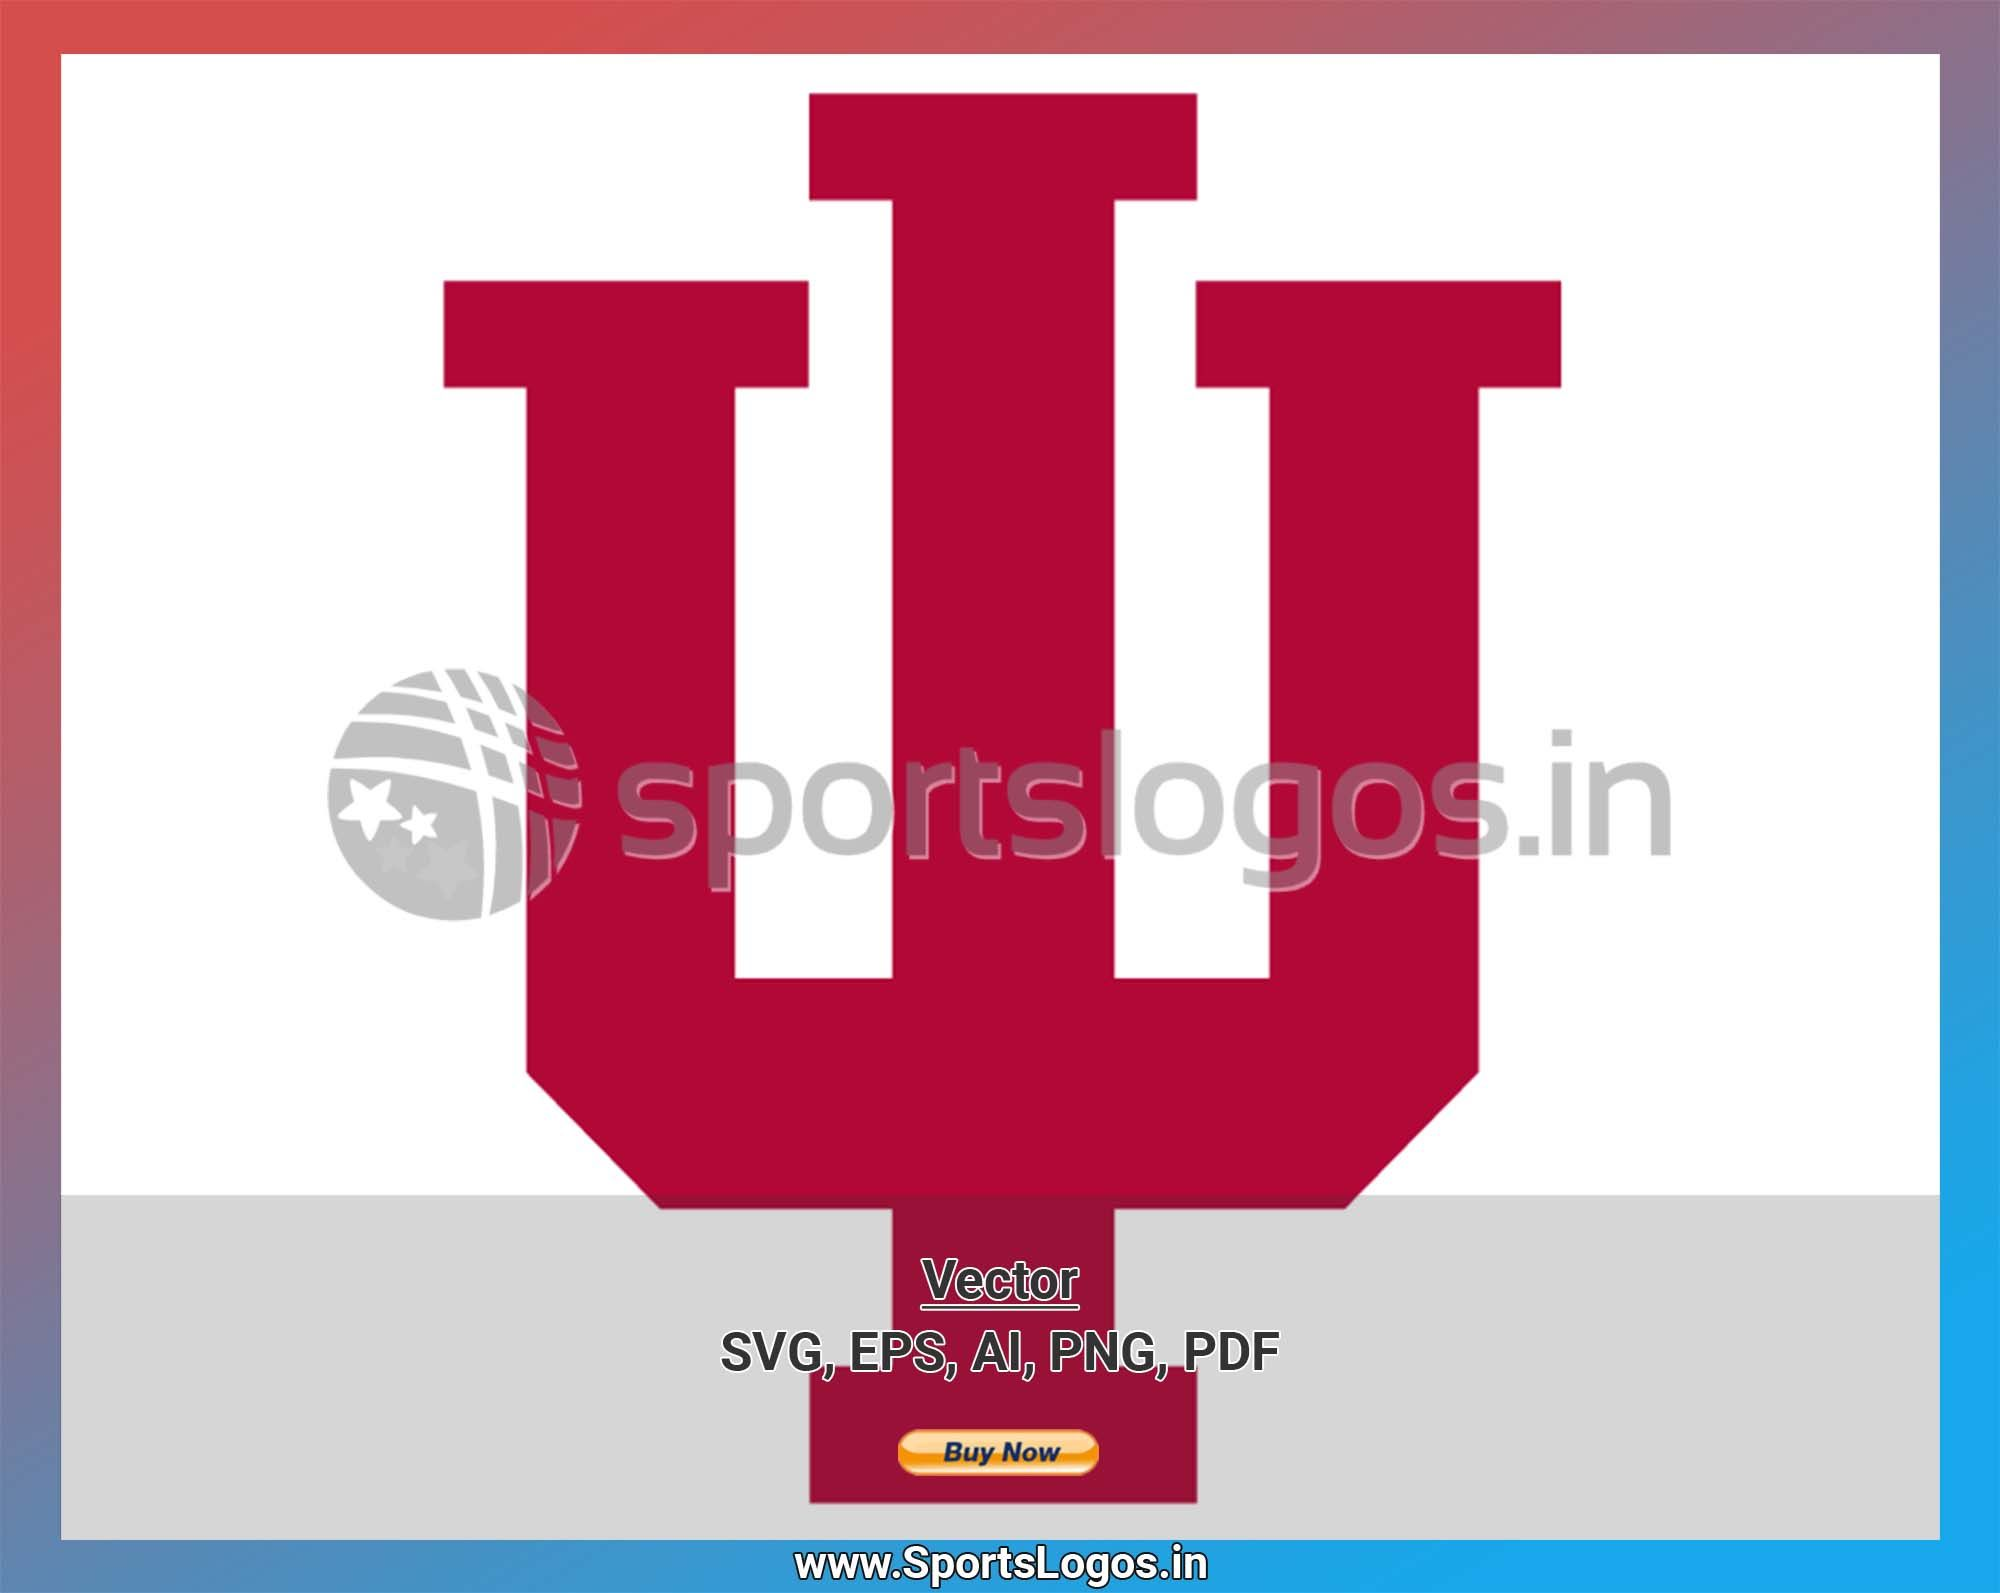 Indiana Hoosiers College Sports Vector Svg Logo In 5 Formats Spln001981 Sports Logos Embroidery Vector For Nfl Nba Nhl Mlb Milb And More In 2020 Indiana Hoosiers College Sports Embroidery Logo